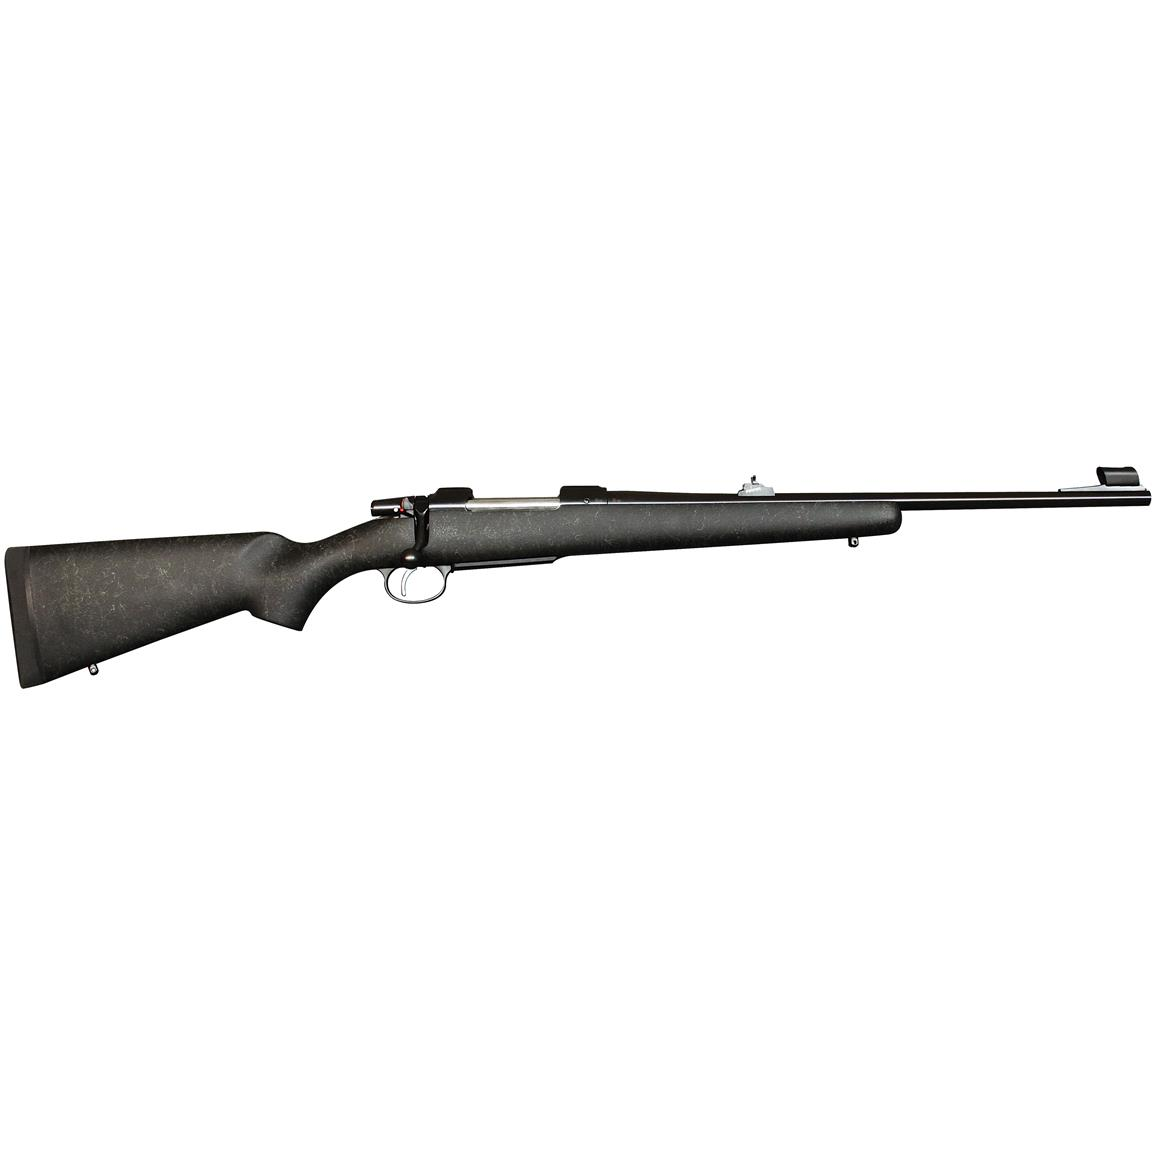 "CZ-USA 550 Composite Carbine, Bolt Action, .30-06 Springfield, 20.5"" Barrel, Iron Sights, 4+1 rounds"